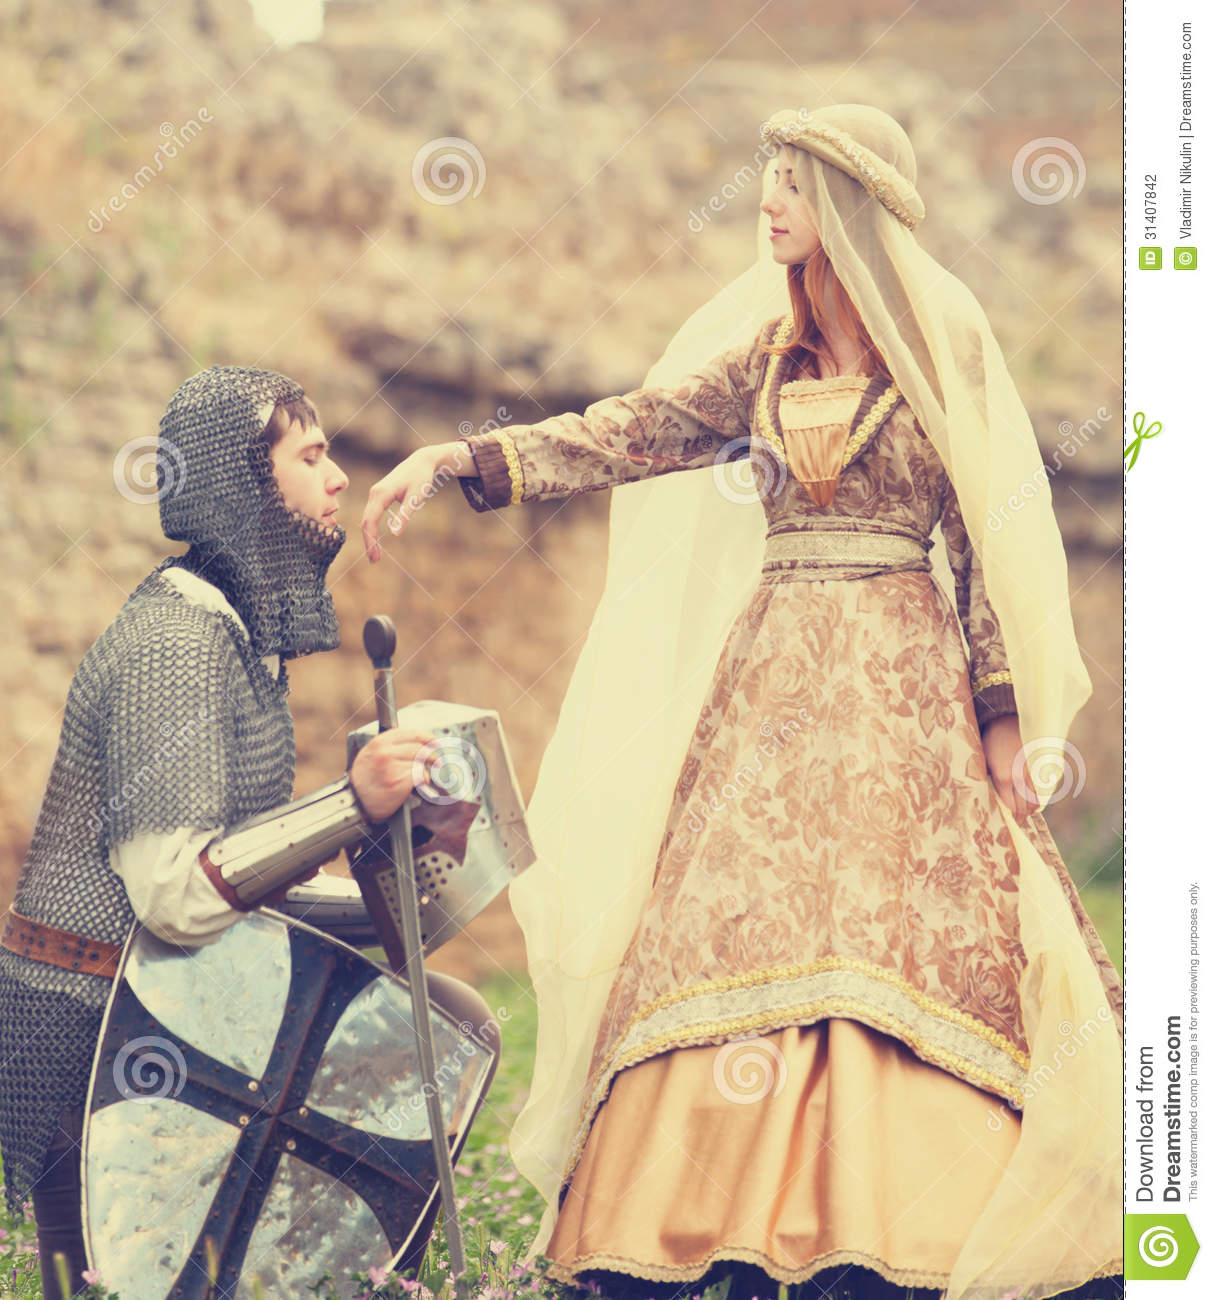 Knight And Medieval Lady Stock Photography - Image: 31407842